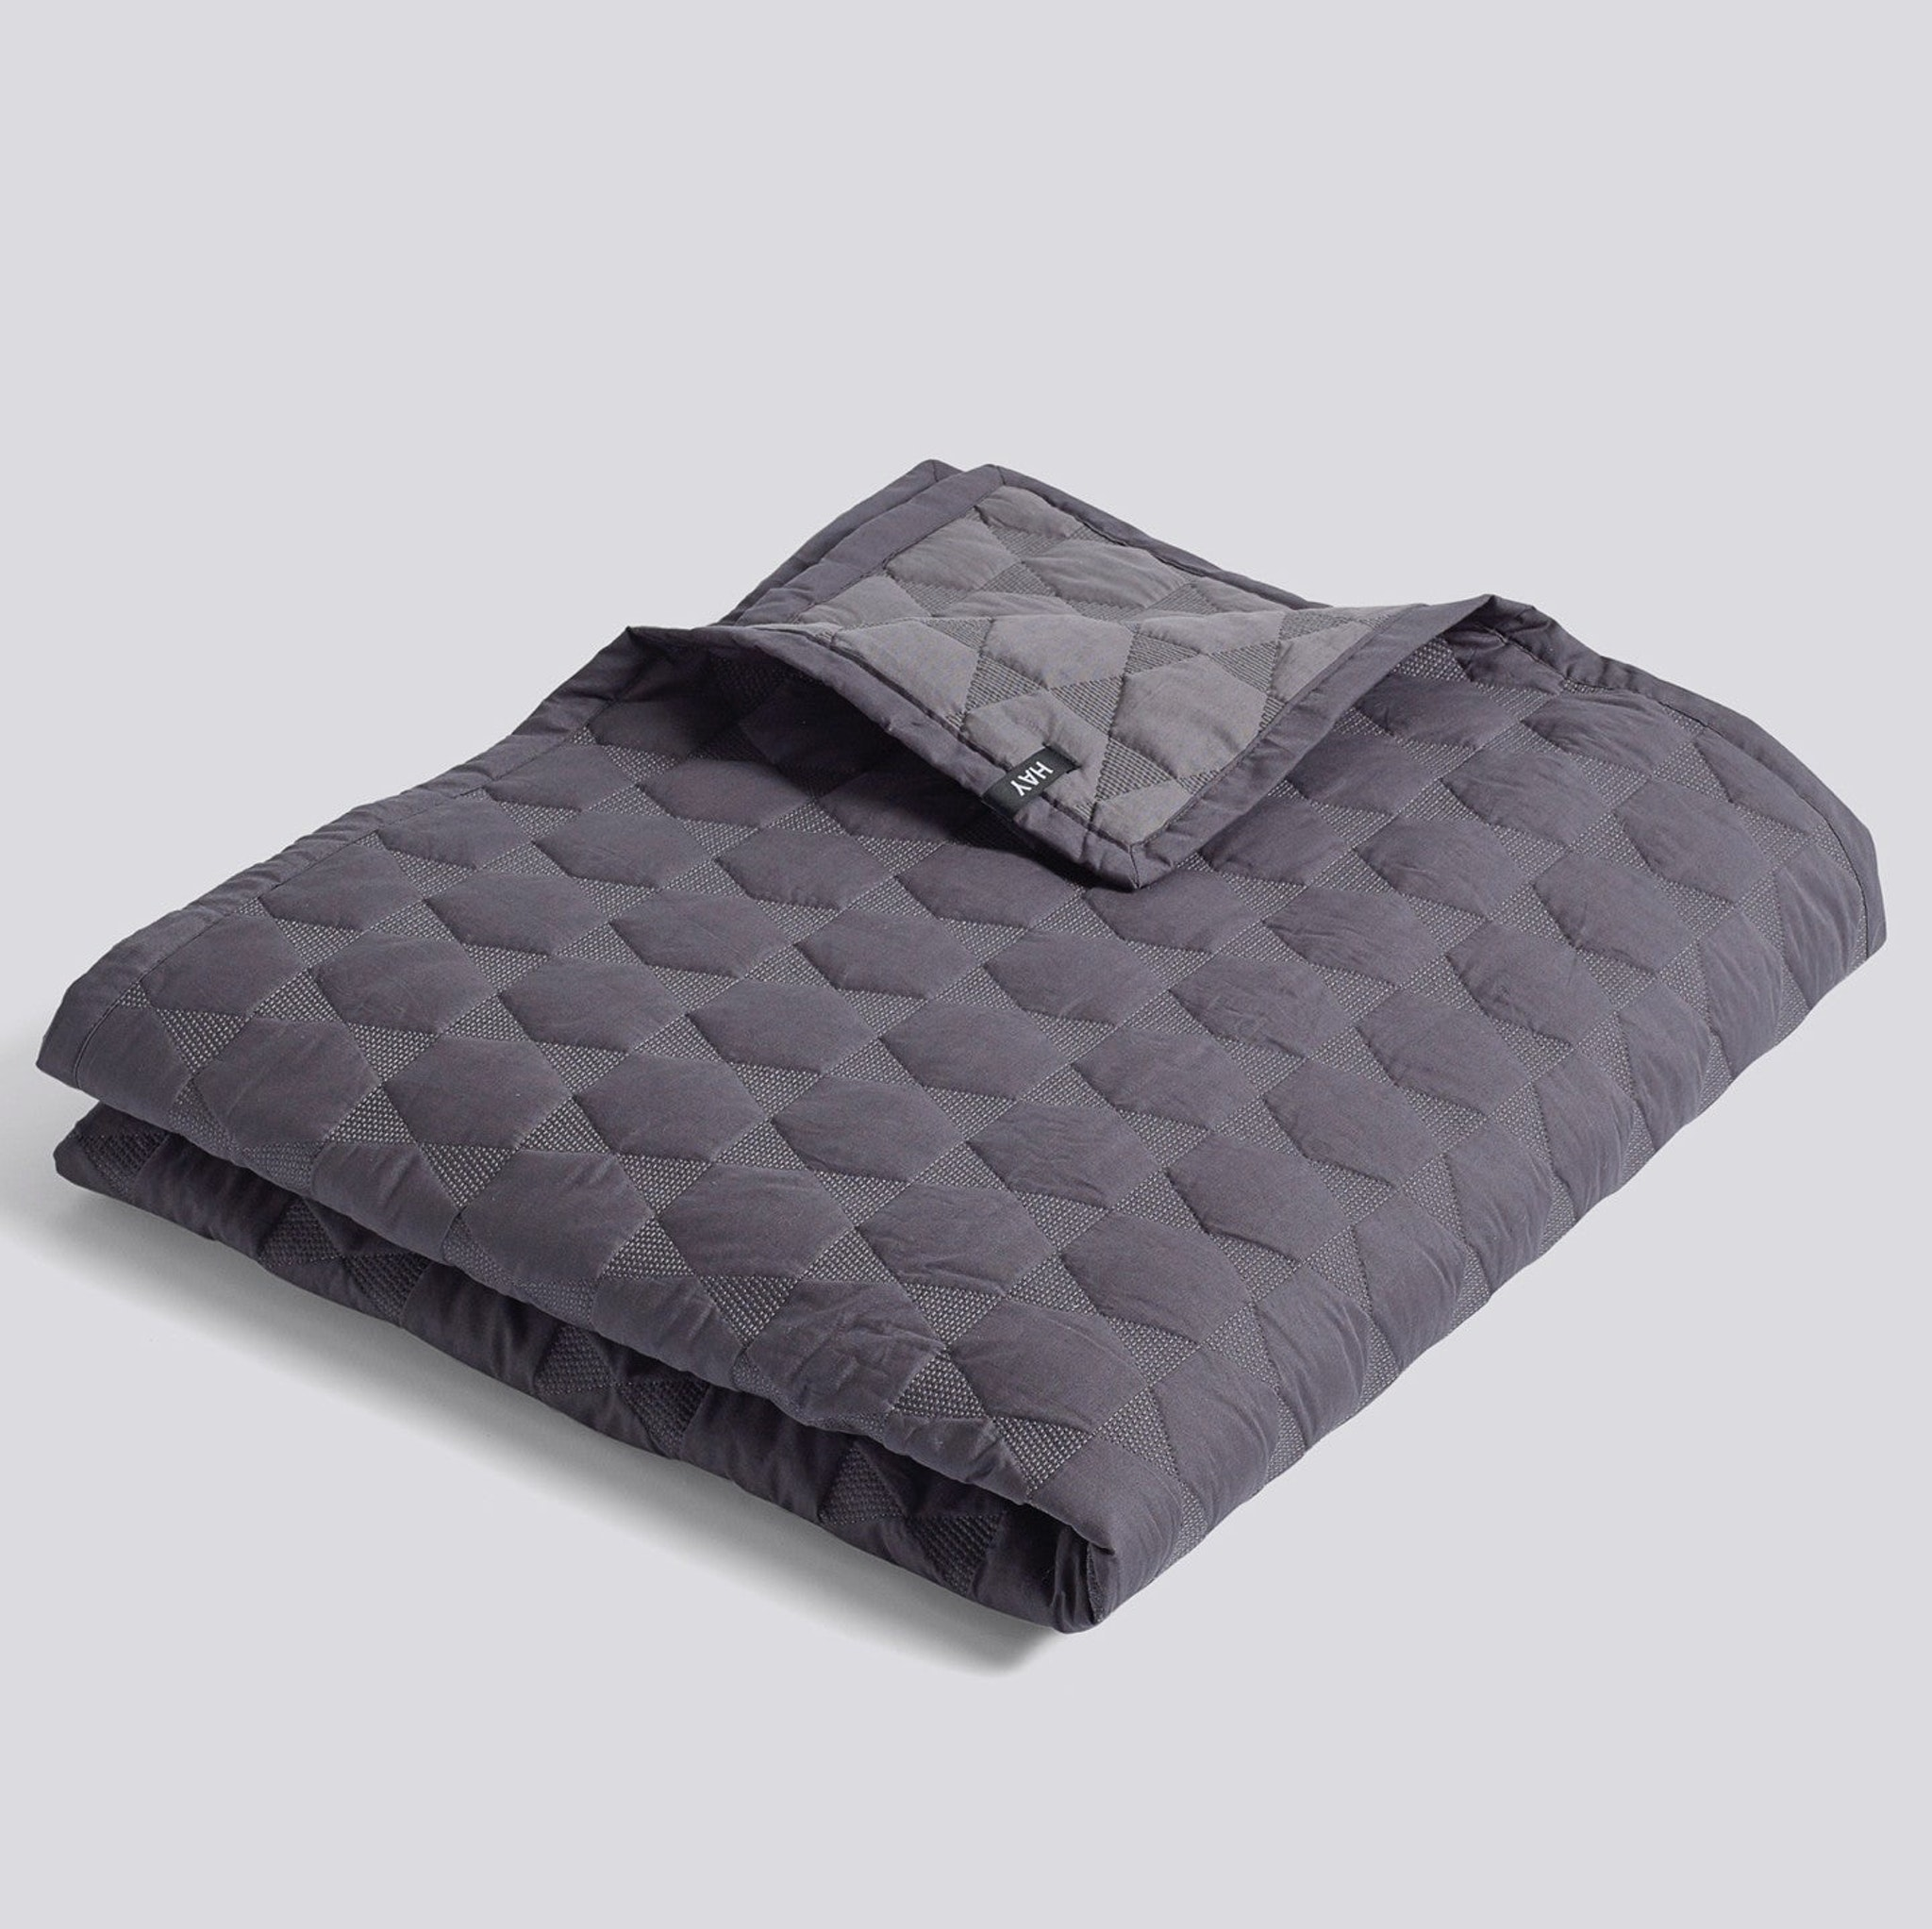 Polygon Bed Cover by Hay